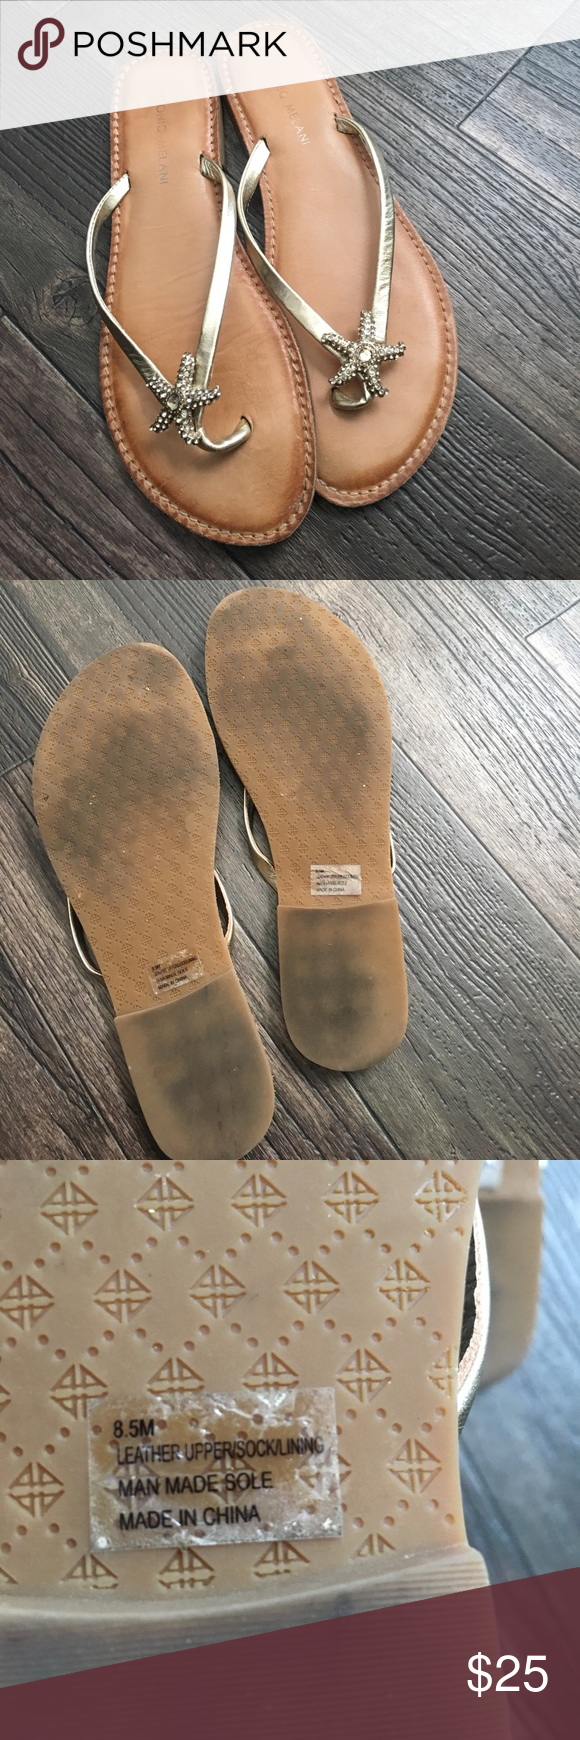 4986b460c0f748 Worn a few times while on honeymoon and haven t worn them since. Upper  leather. Bottom sole man made material. ANTONIO MELANI Shoes Sandals